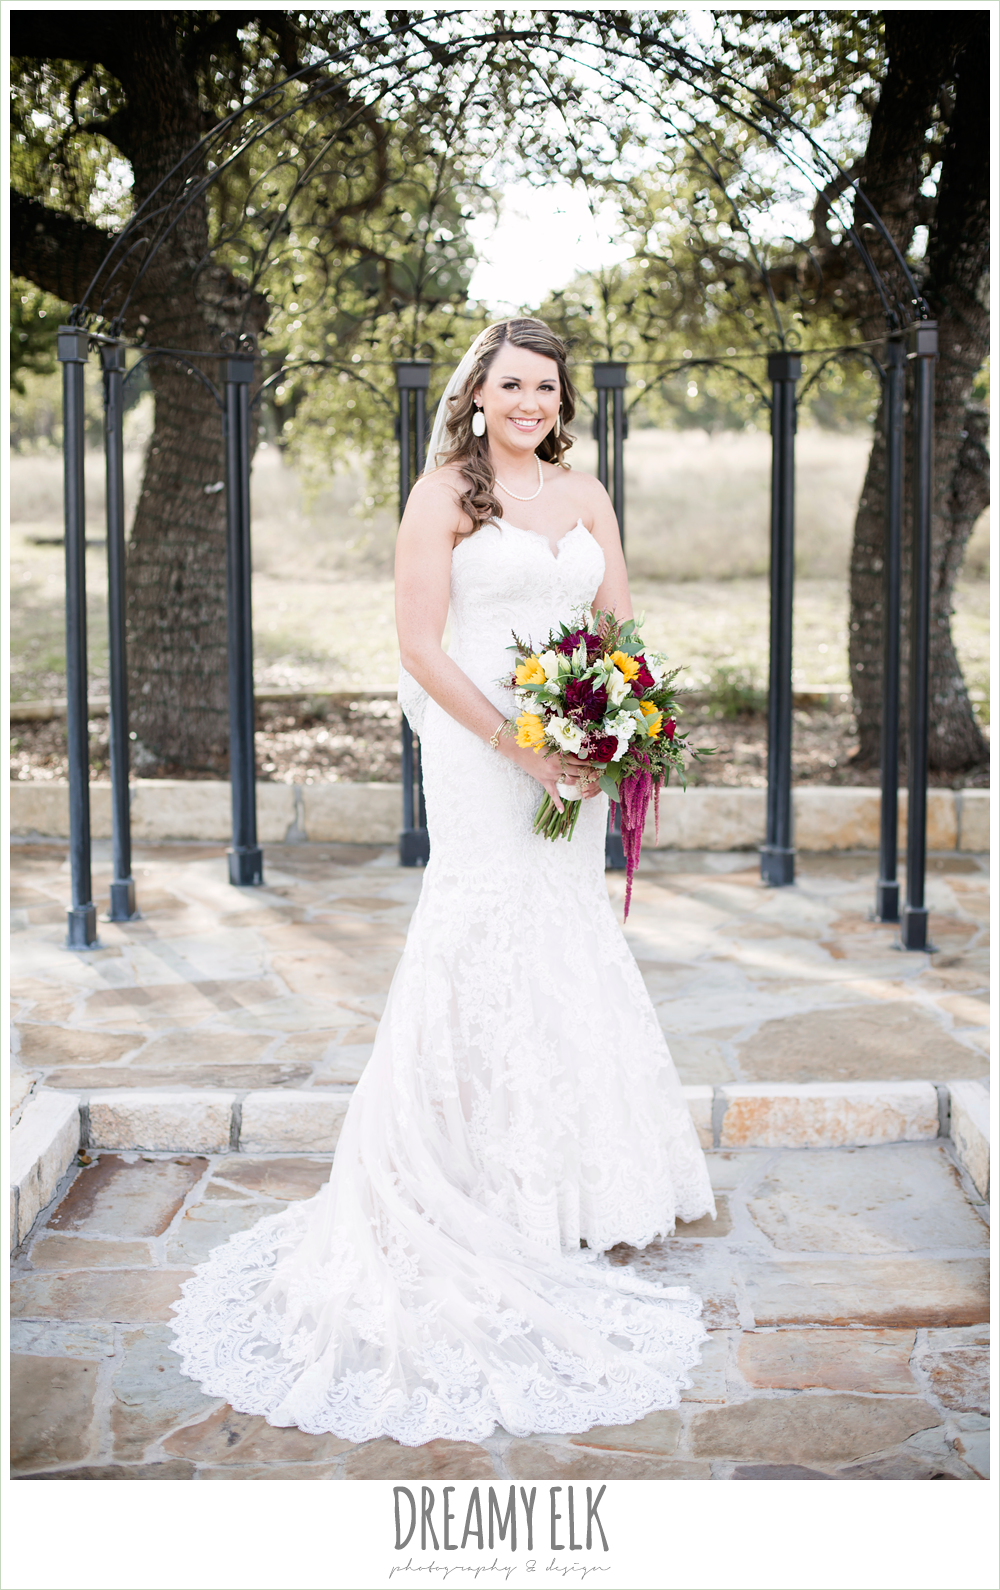 lustrebella, ventura's bridal fashions, sweetheart lace strapless fit and flare wedding dress, wild bunches floral, maroon and gold fall wedding photo, la hacienda, dripping springs, texas {dreamy elk photography and design}